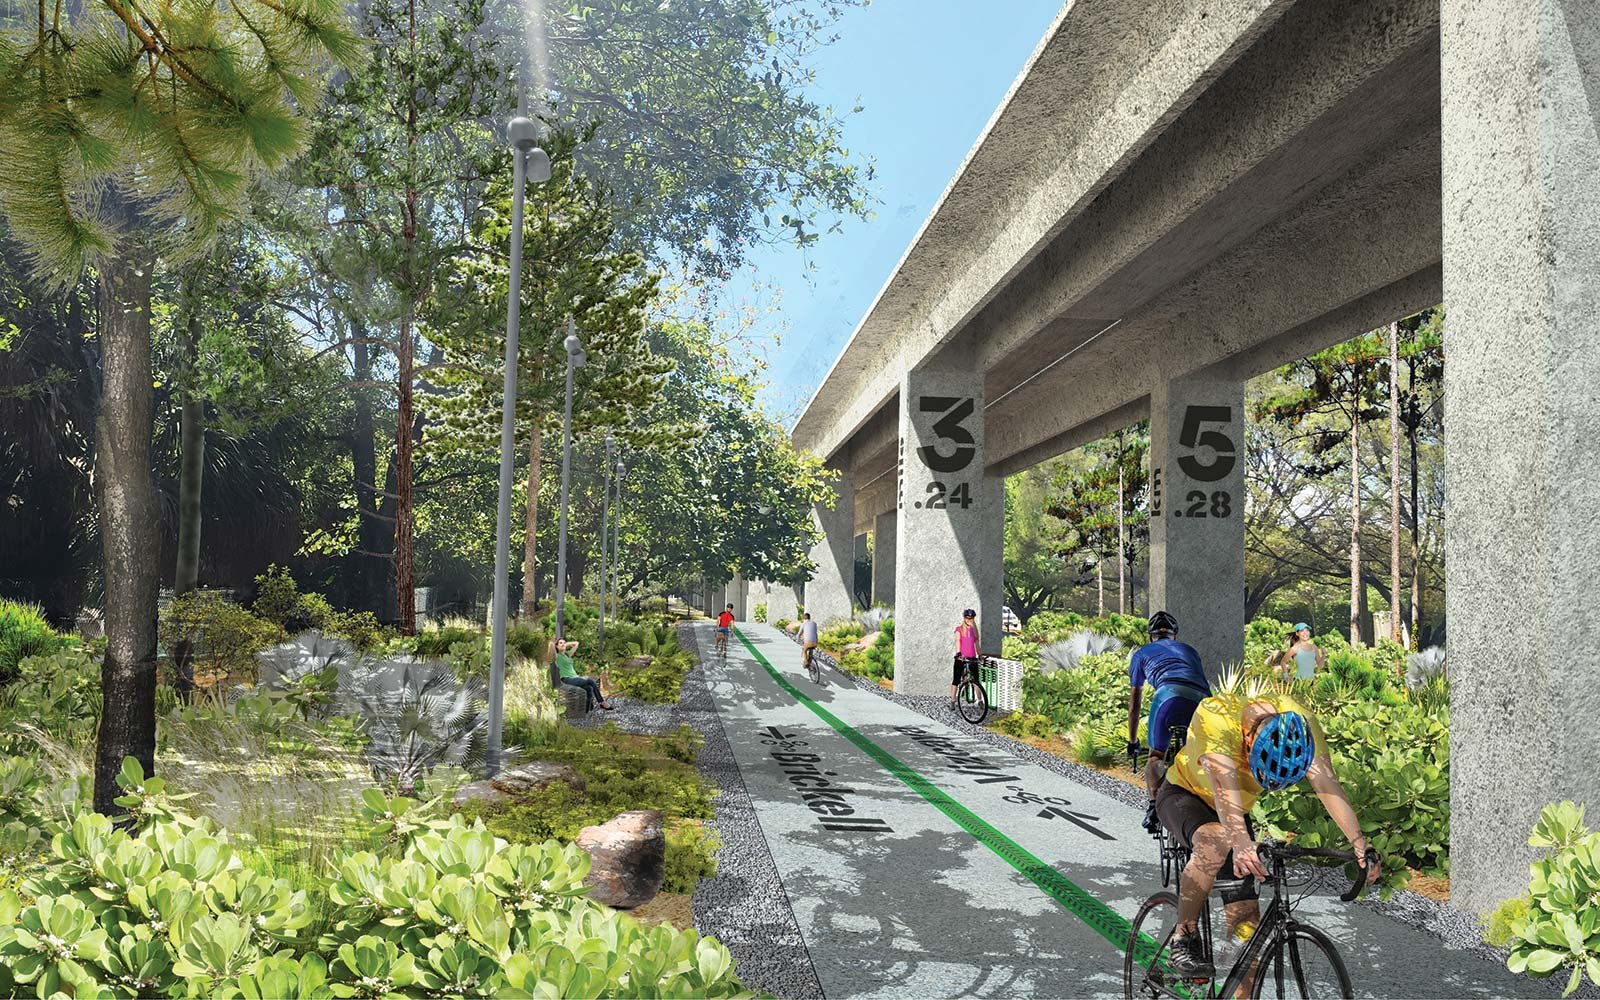 The Underline Urban Redevelopment Project James Corner Field Operations Brickell Park Miami Florida Bike Paths